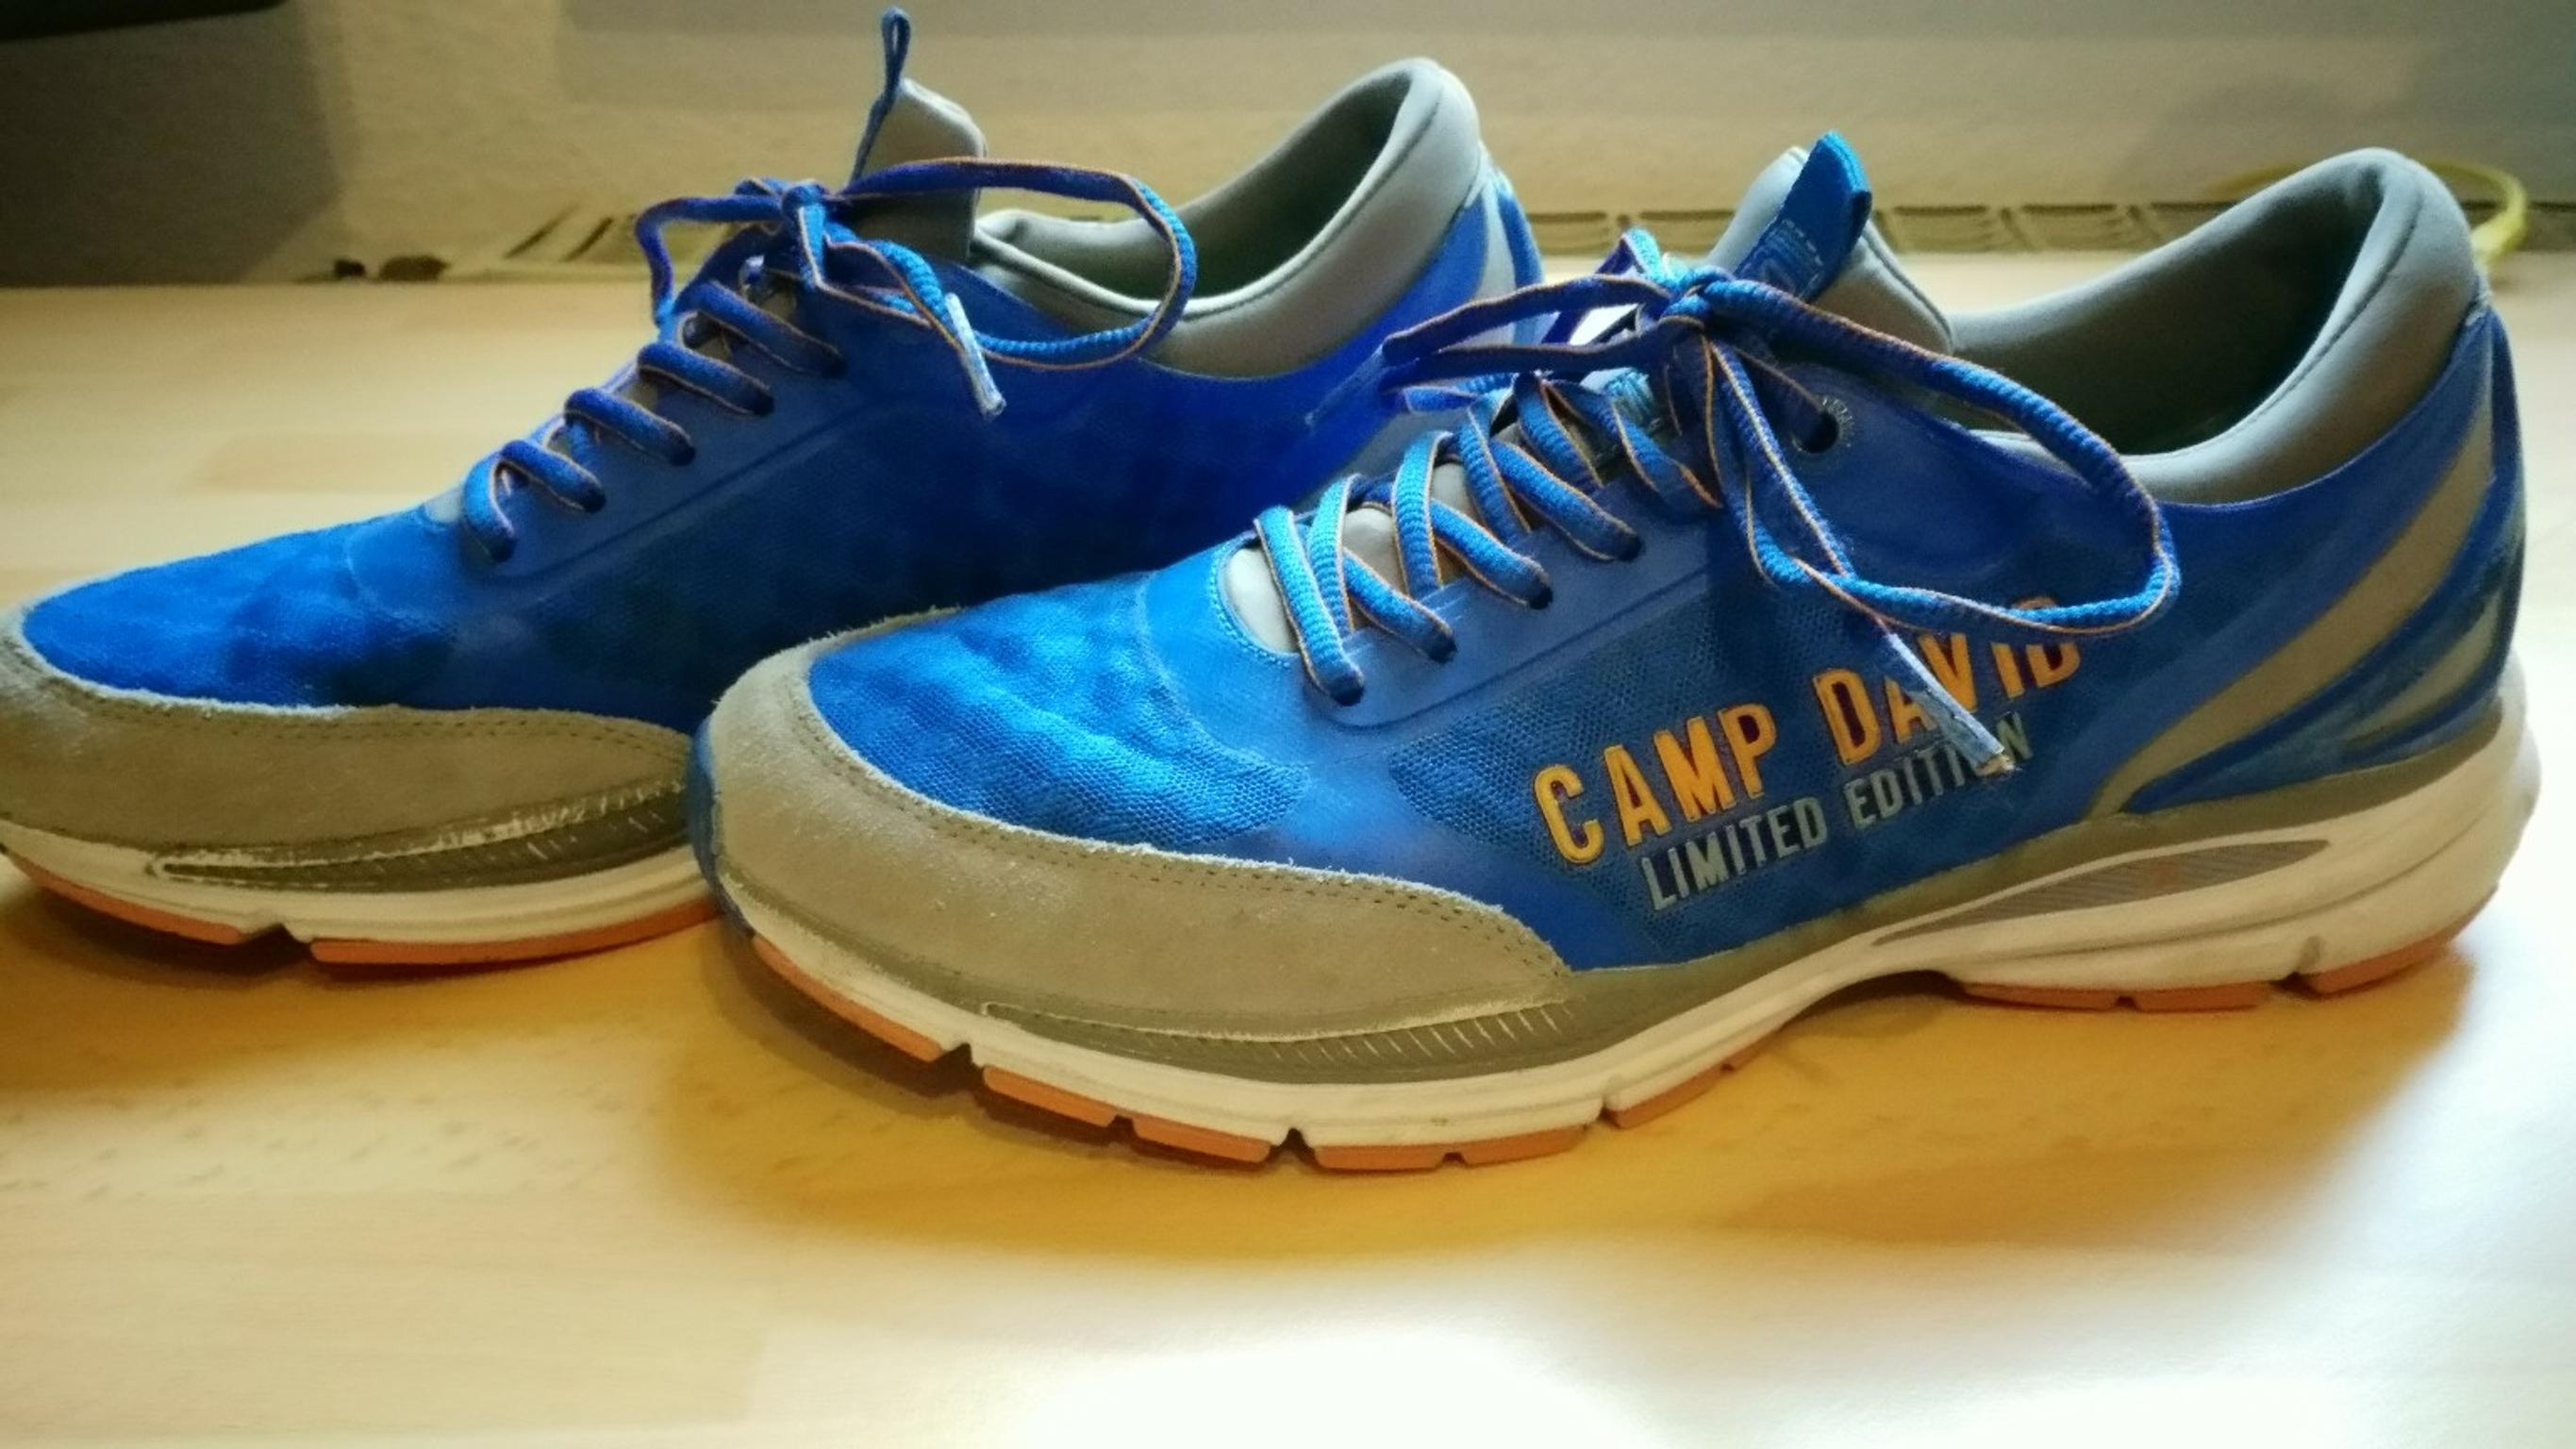 Edition Schuhe C63 Camp David Limited Ygf7yI6vb